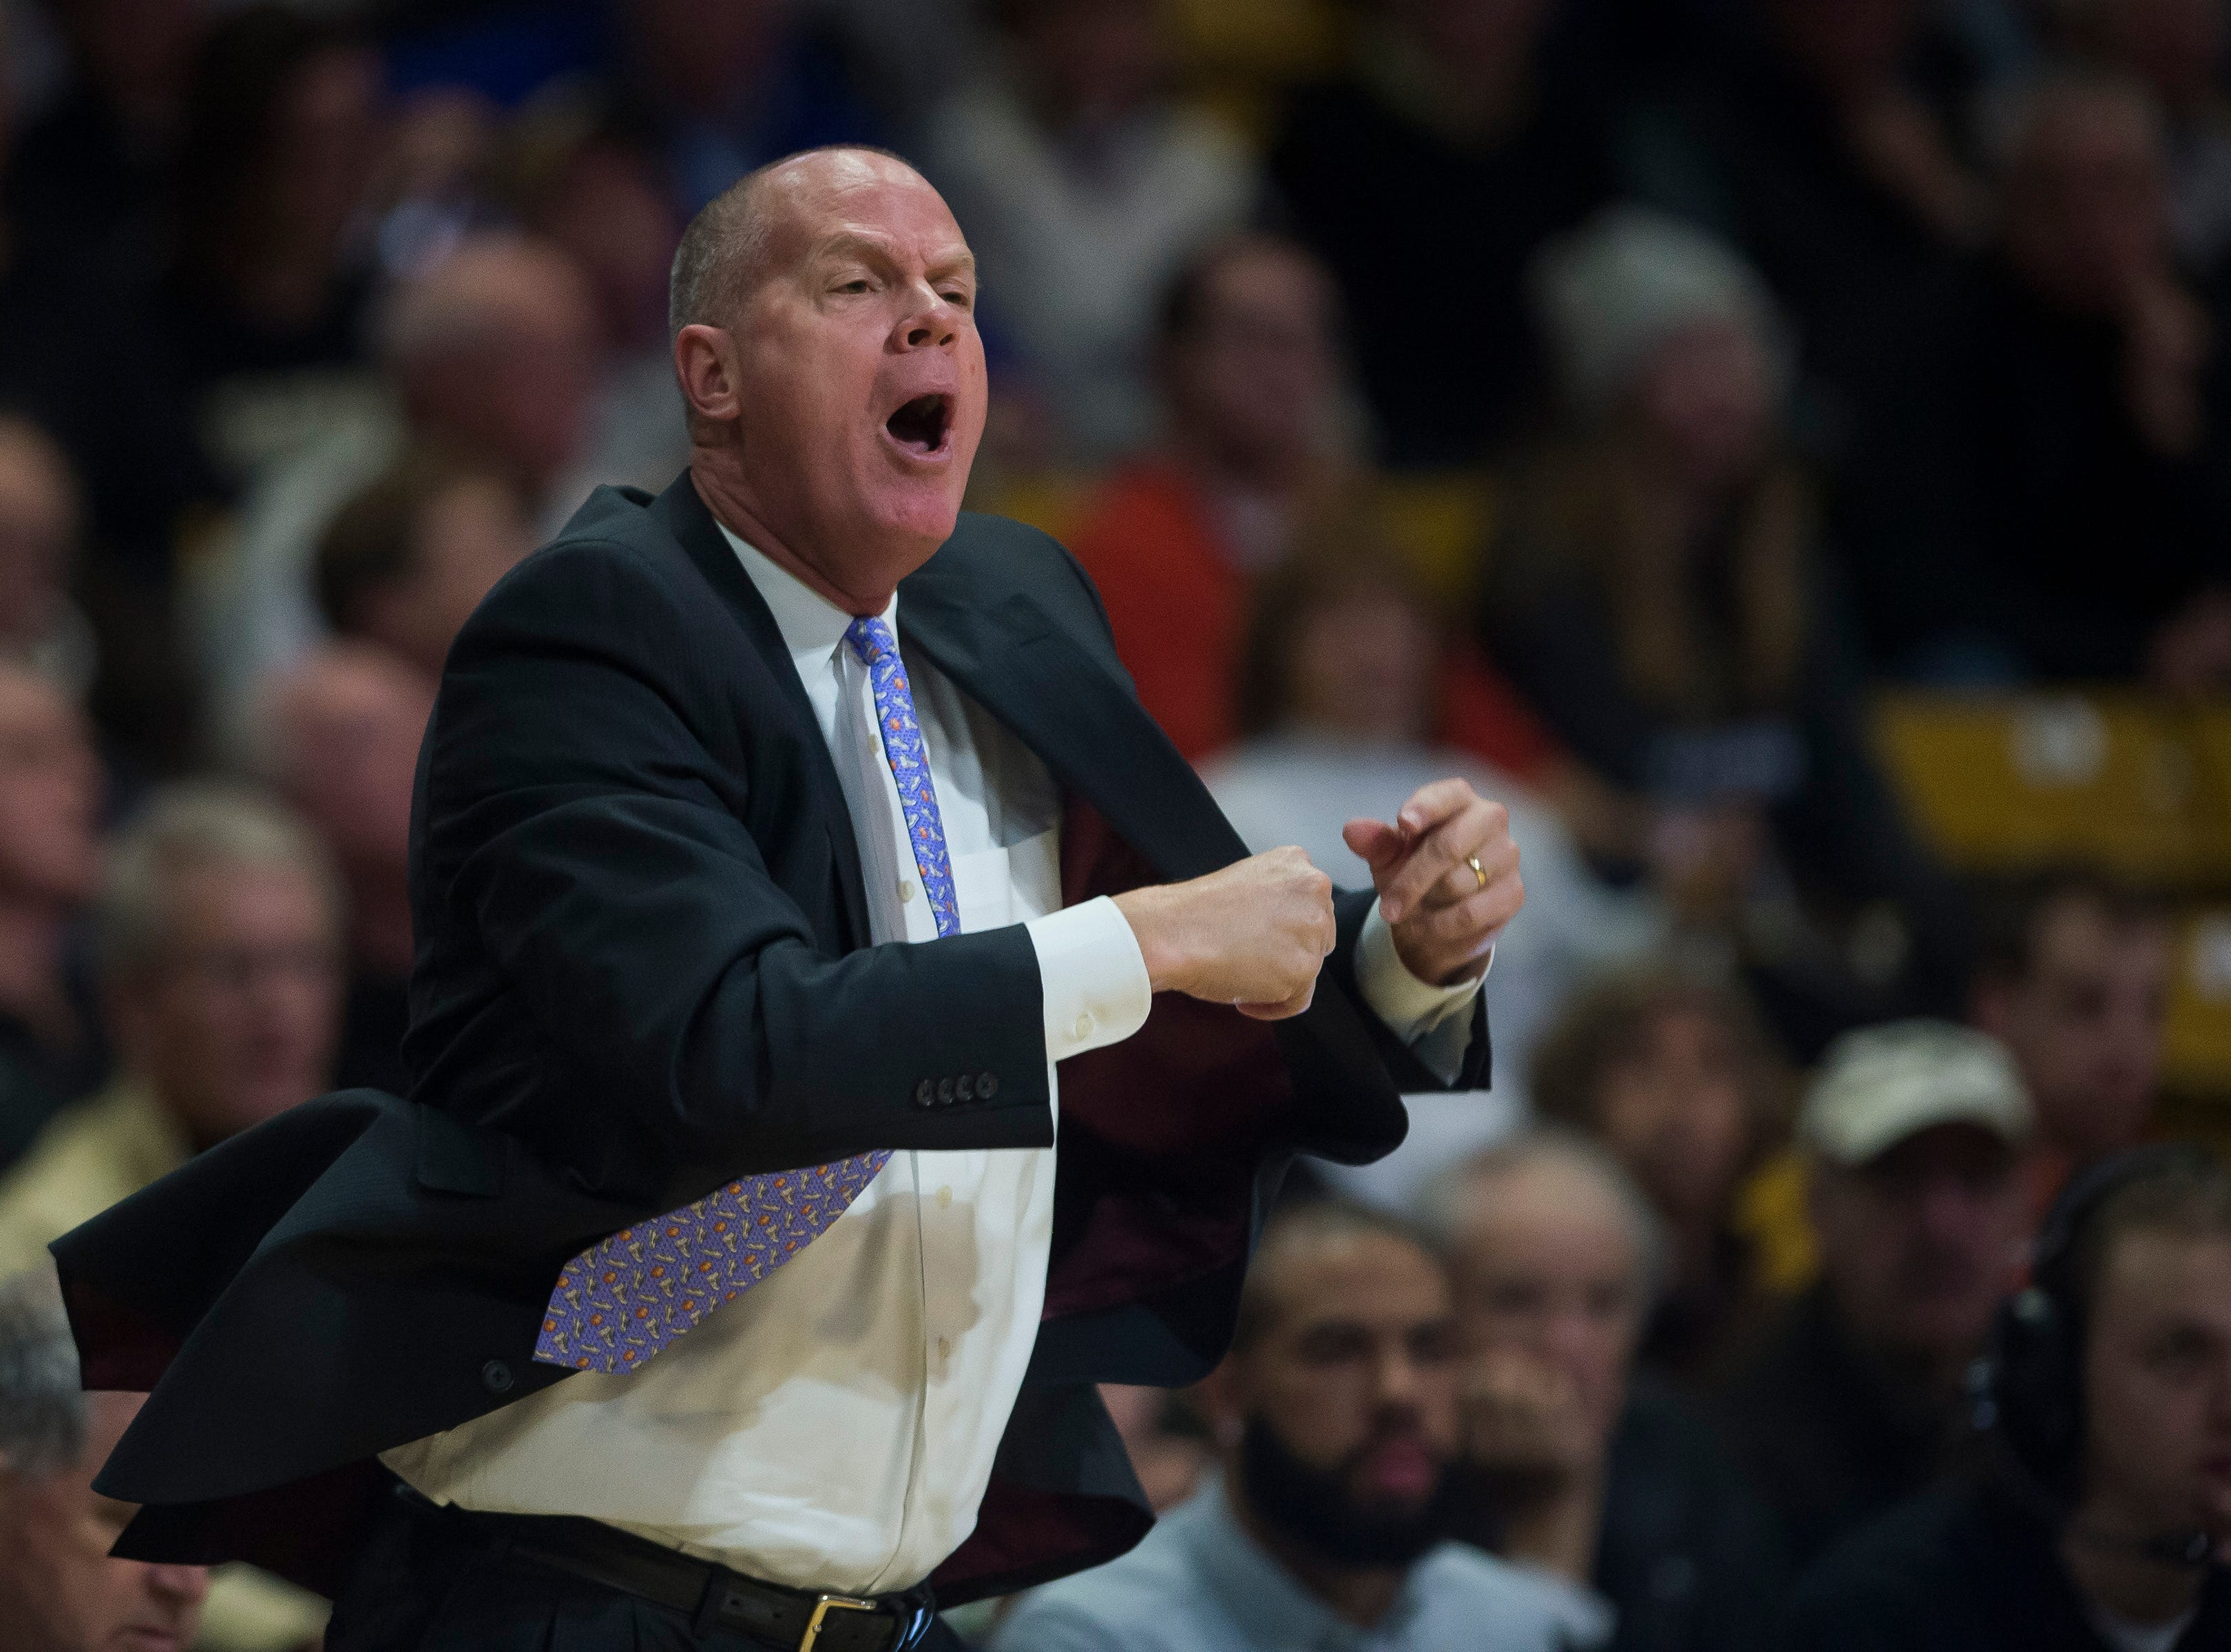 University of Colorado head coach Tad Boyle yells from the bench during a game against Colorado State University on Saturday, Dec. 1, 2018, at the CU Event Center in Boulder, Colo.